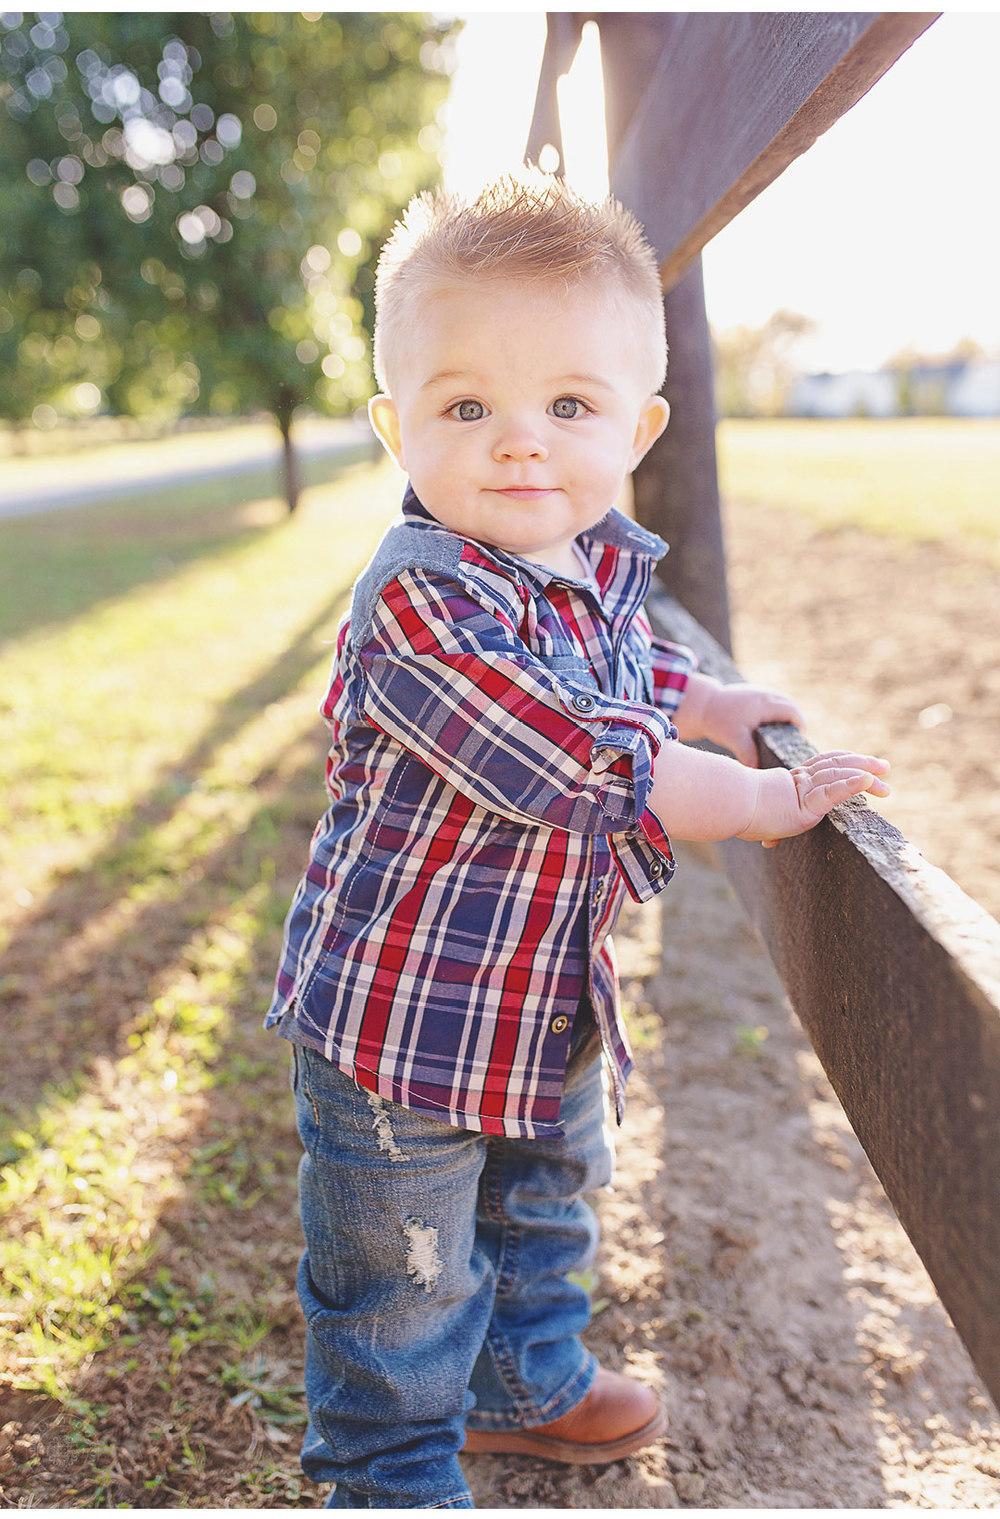 pierson-2015-dayton-family-children-photography-4.jpg